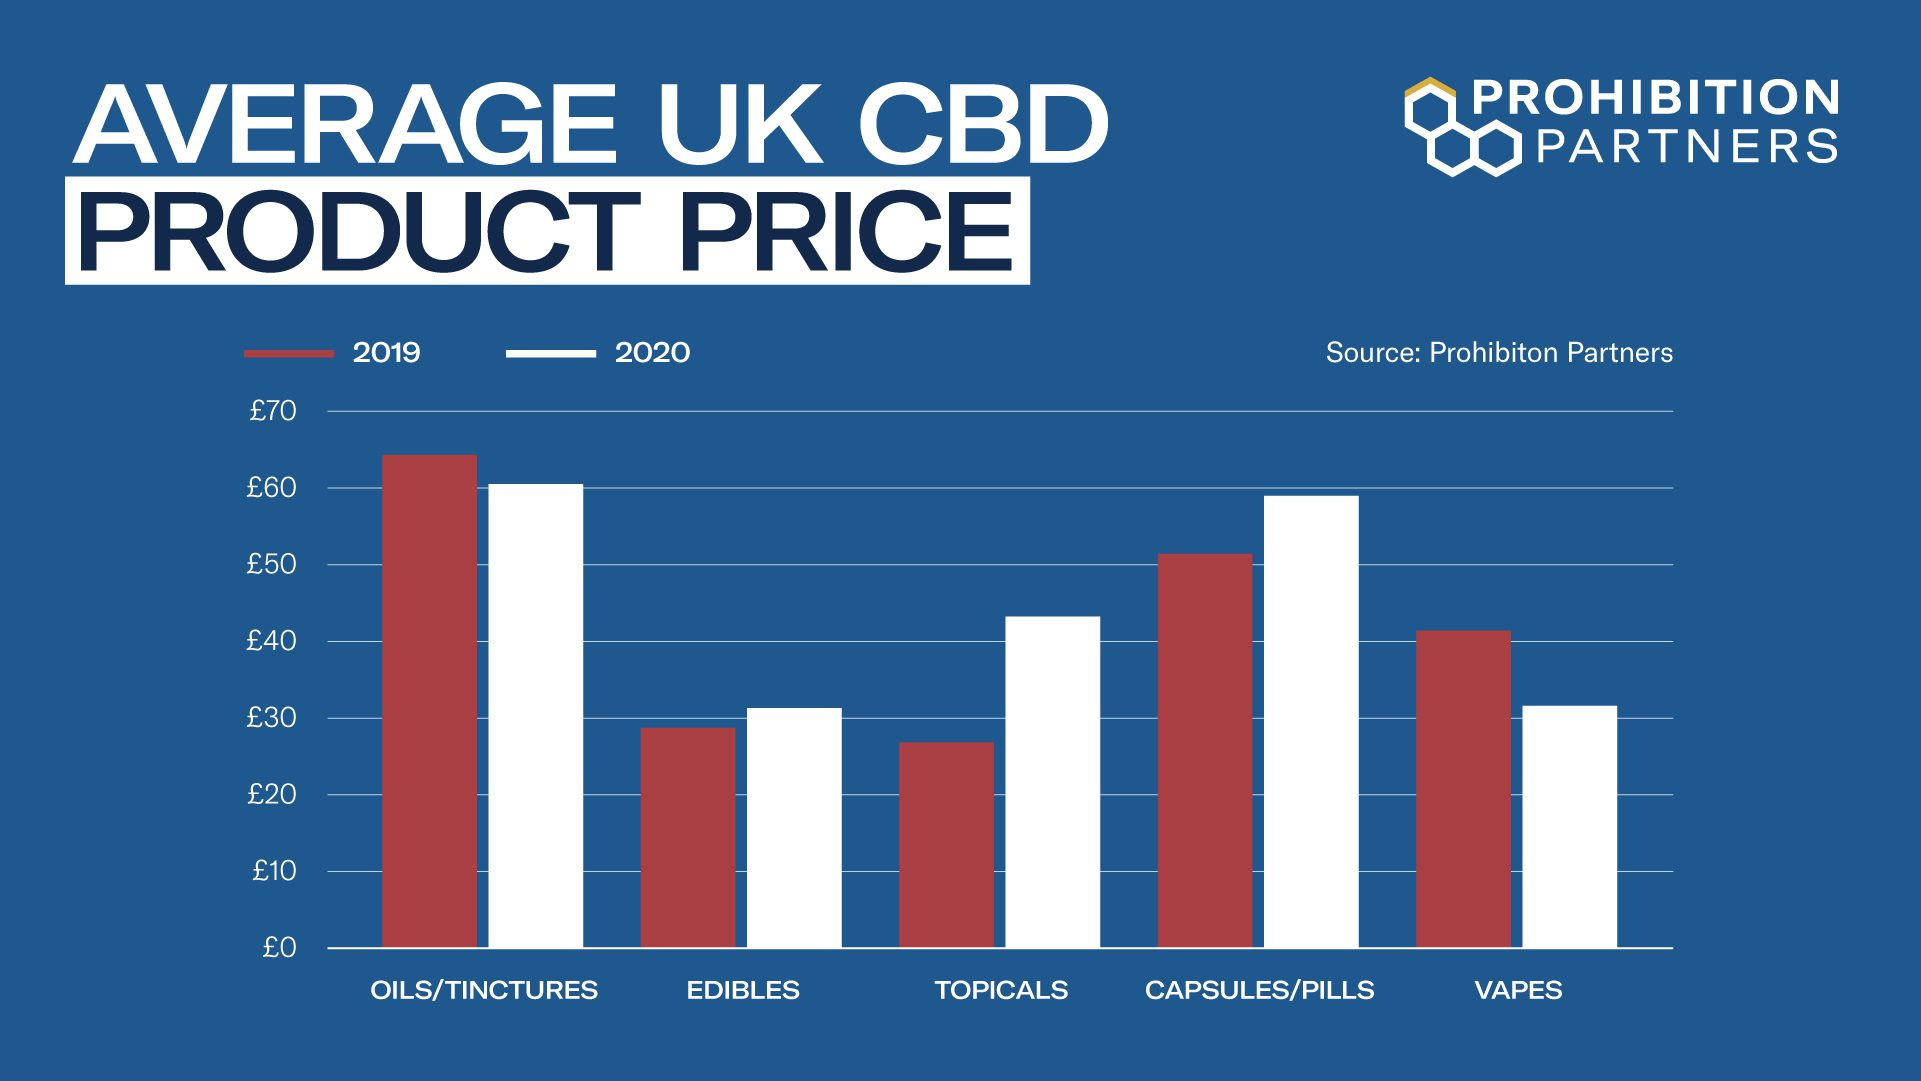 Average UK CBD Product Price - The Top Ten Cannabis Trends for 2021